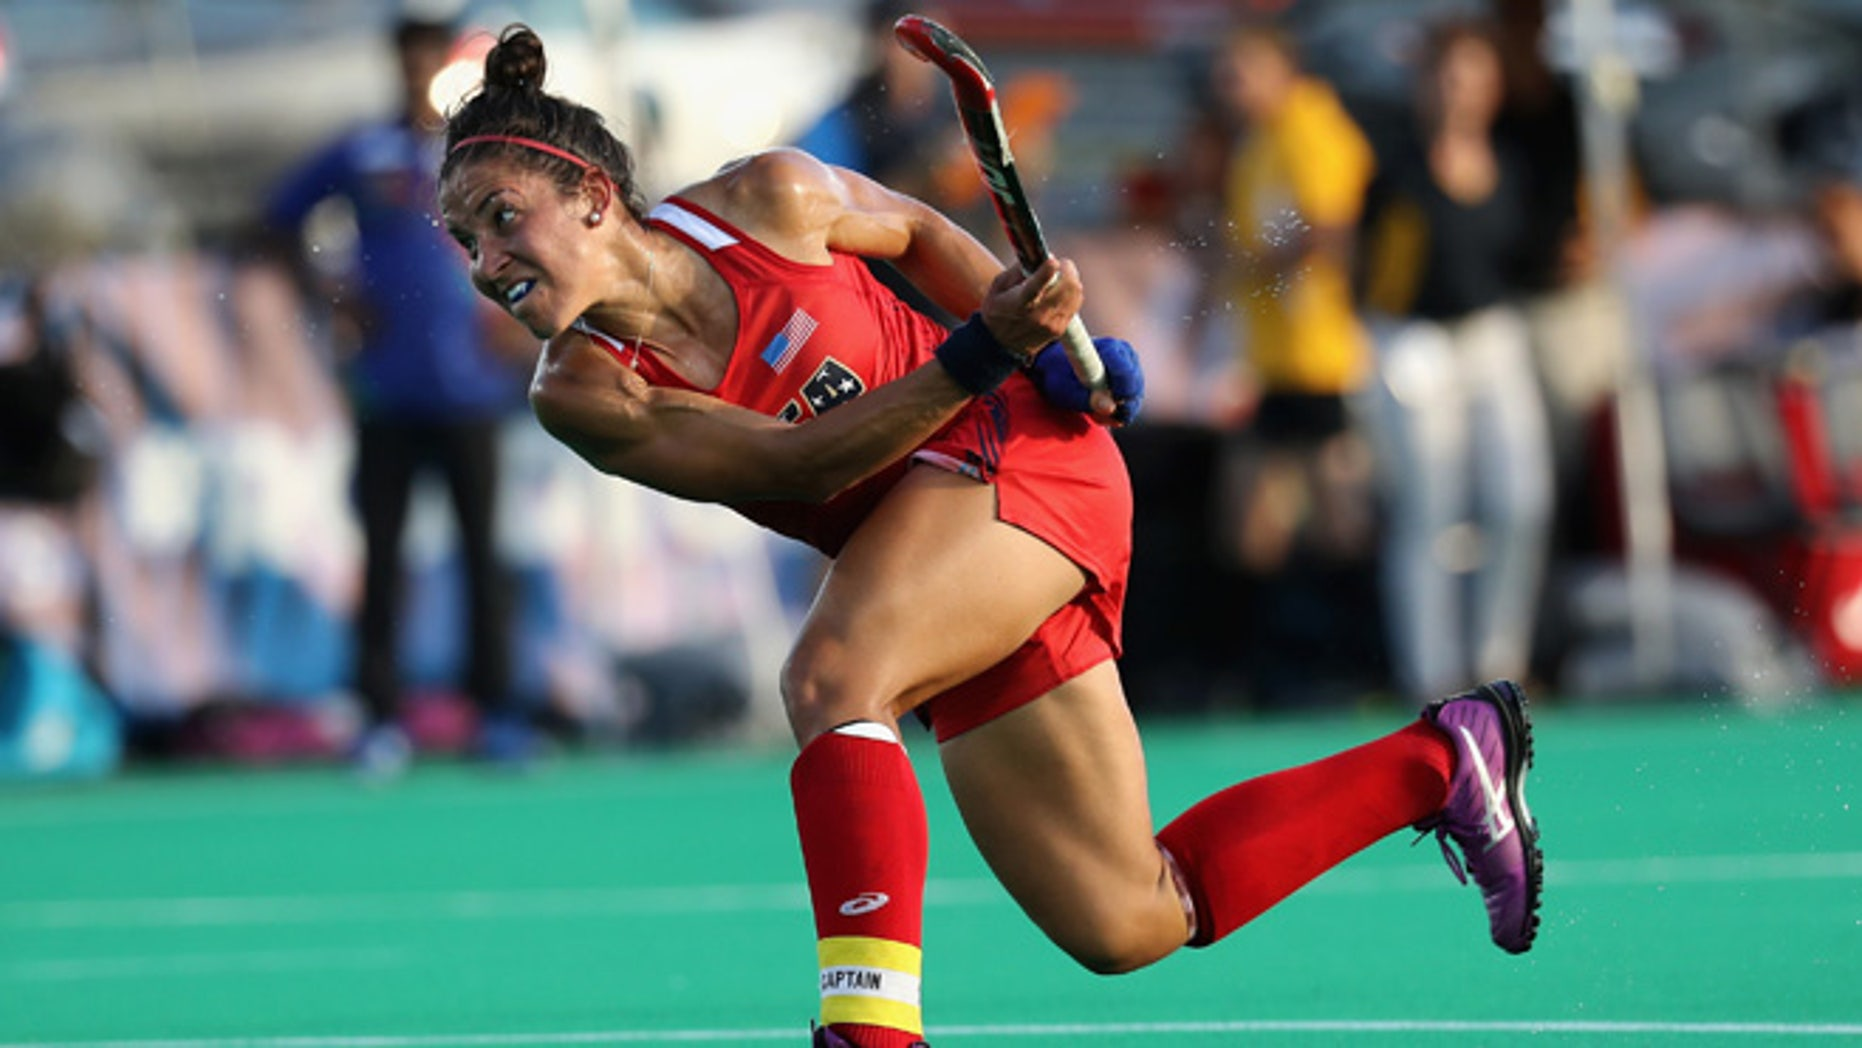 MANHEIM, PA - JULY 18:  Melissa Gonzalez #5 of Team USA takes a shot against Team India in the first half during a field hockey match in preparation for the upcoming Rio Olympics on July 18, 2016 in  Manheim, Pennsylvania.  (Photo by Rob Carr/Getty Images)